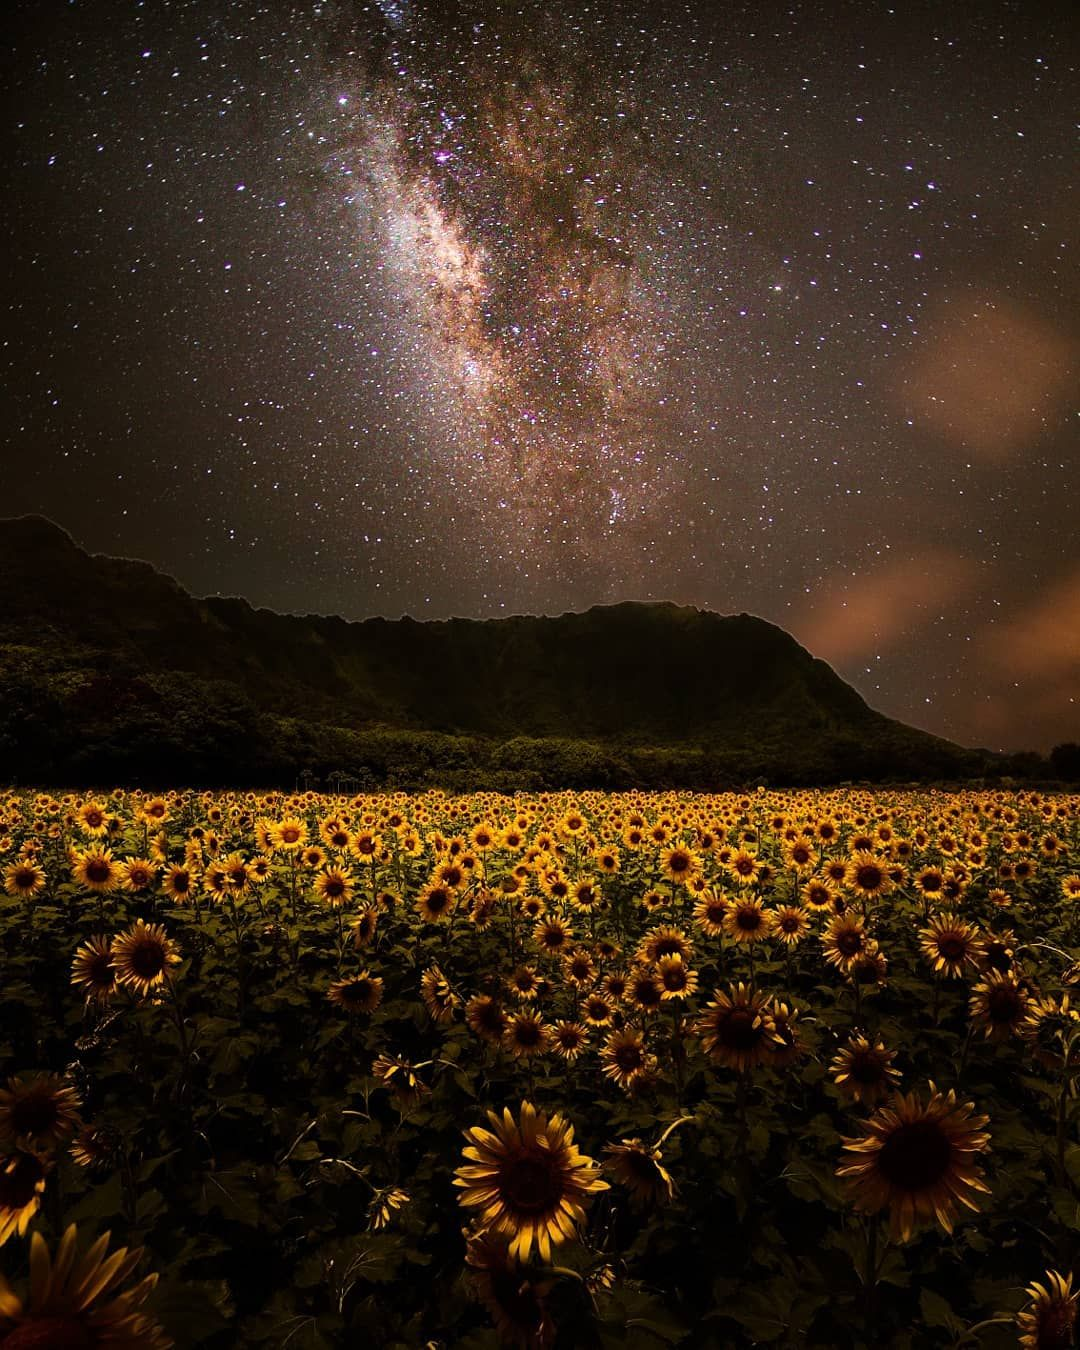 Isn't this what you would imagine what a sunflower field ...